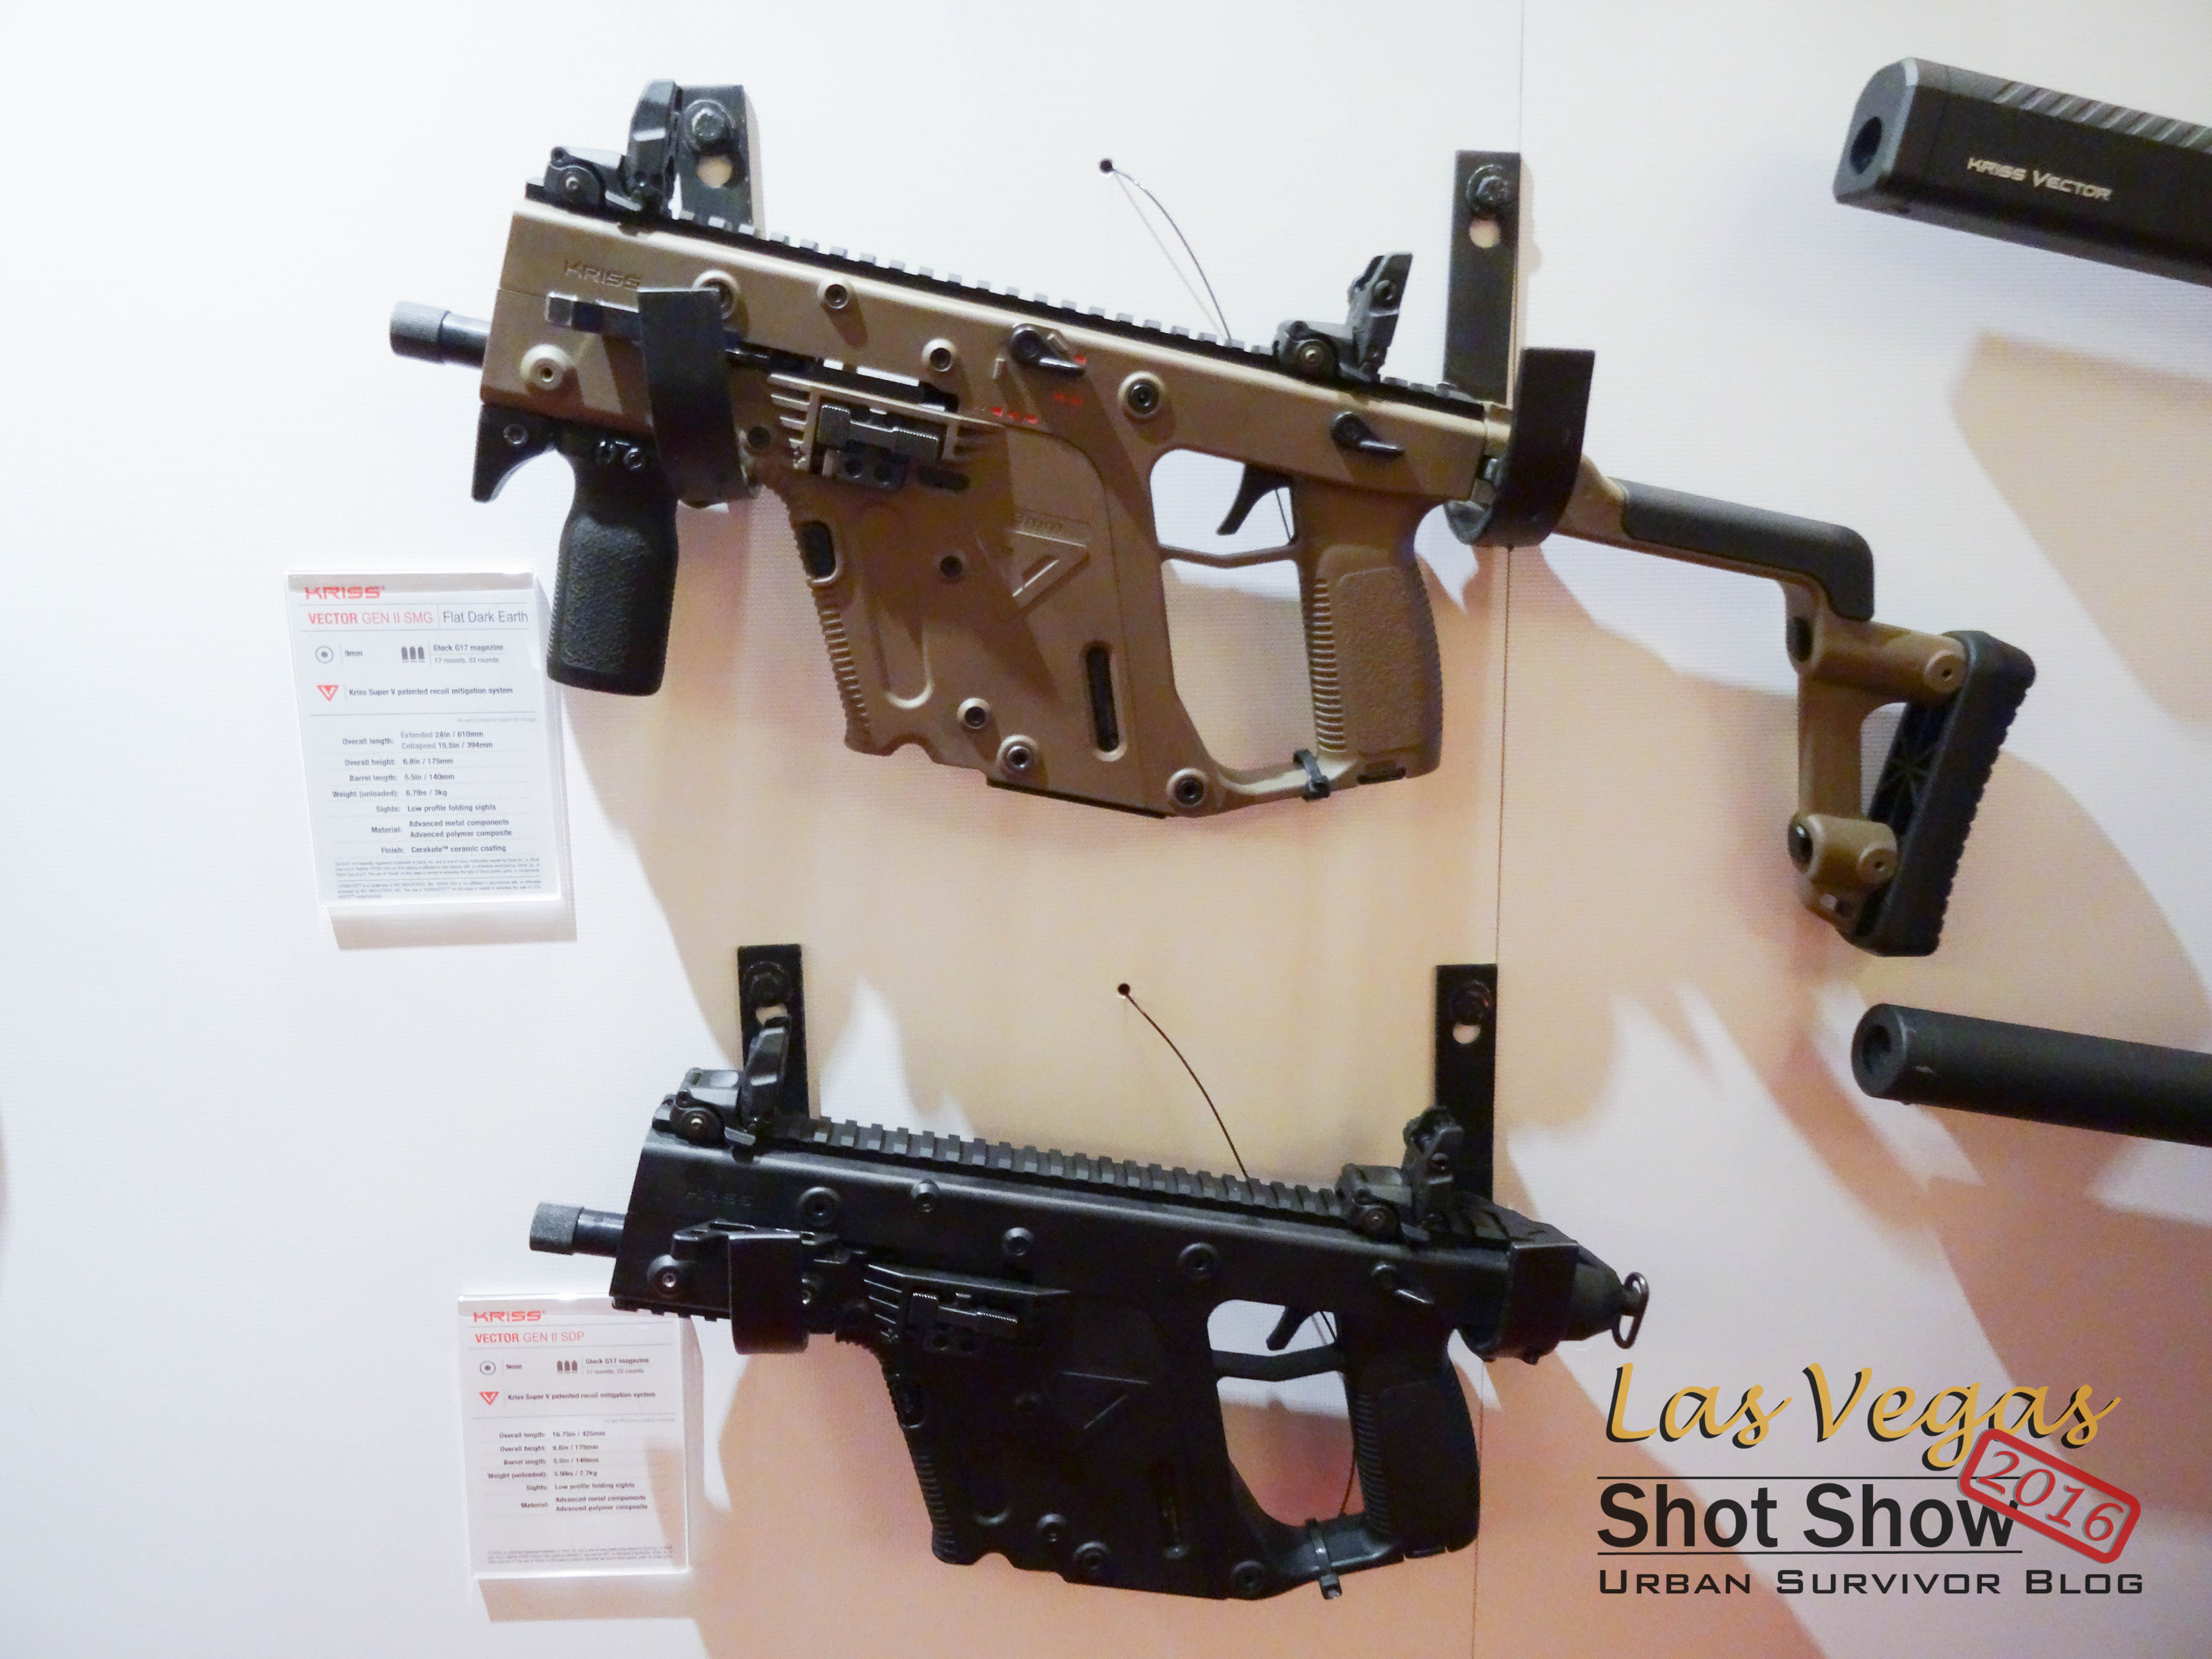 ShotShow2016: KRISS USA - Urban Survivor Blog